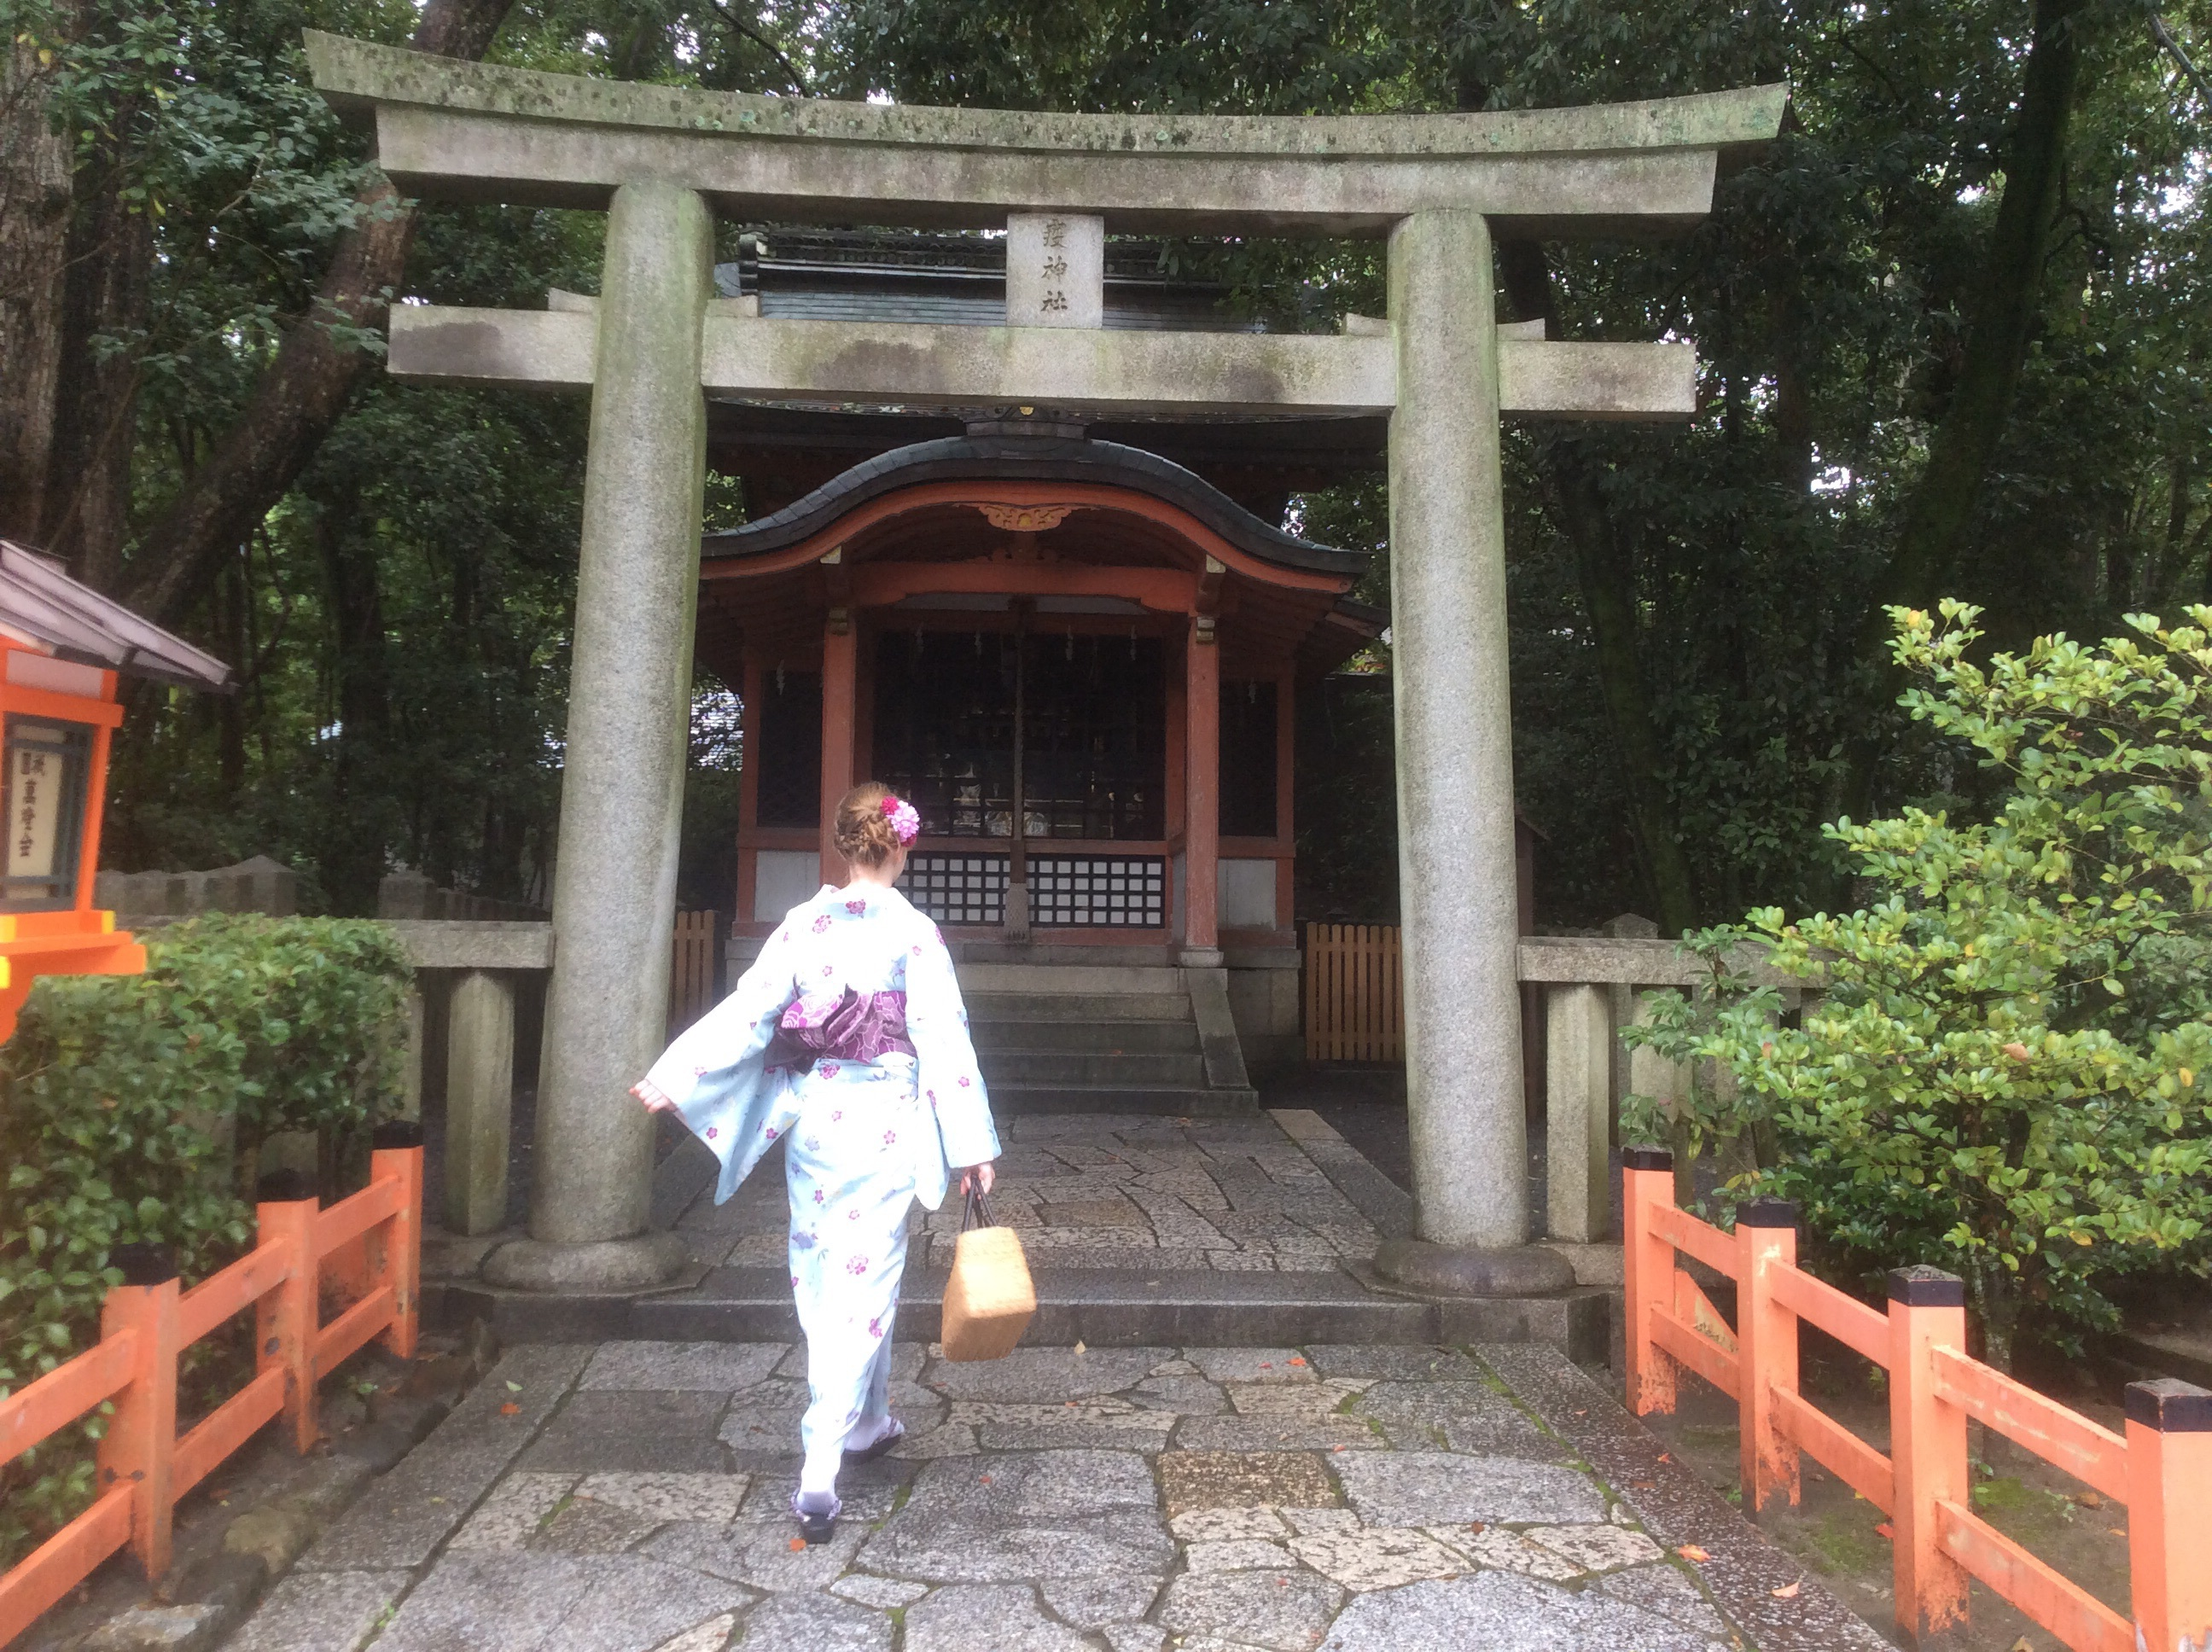 It stopped raining for a while and it got easier to walk in the kimono.